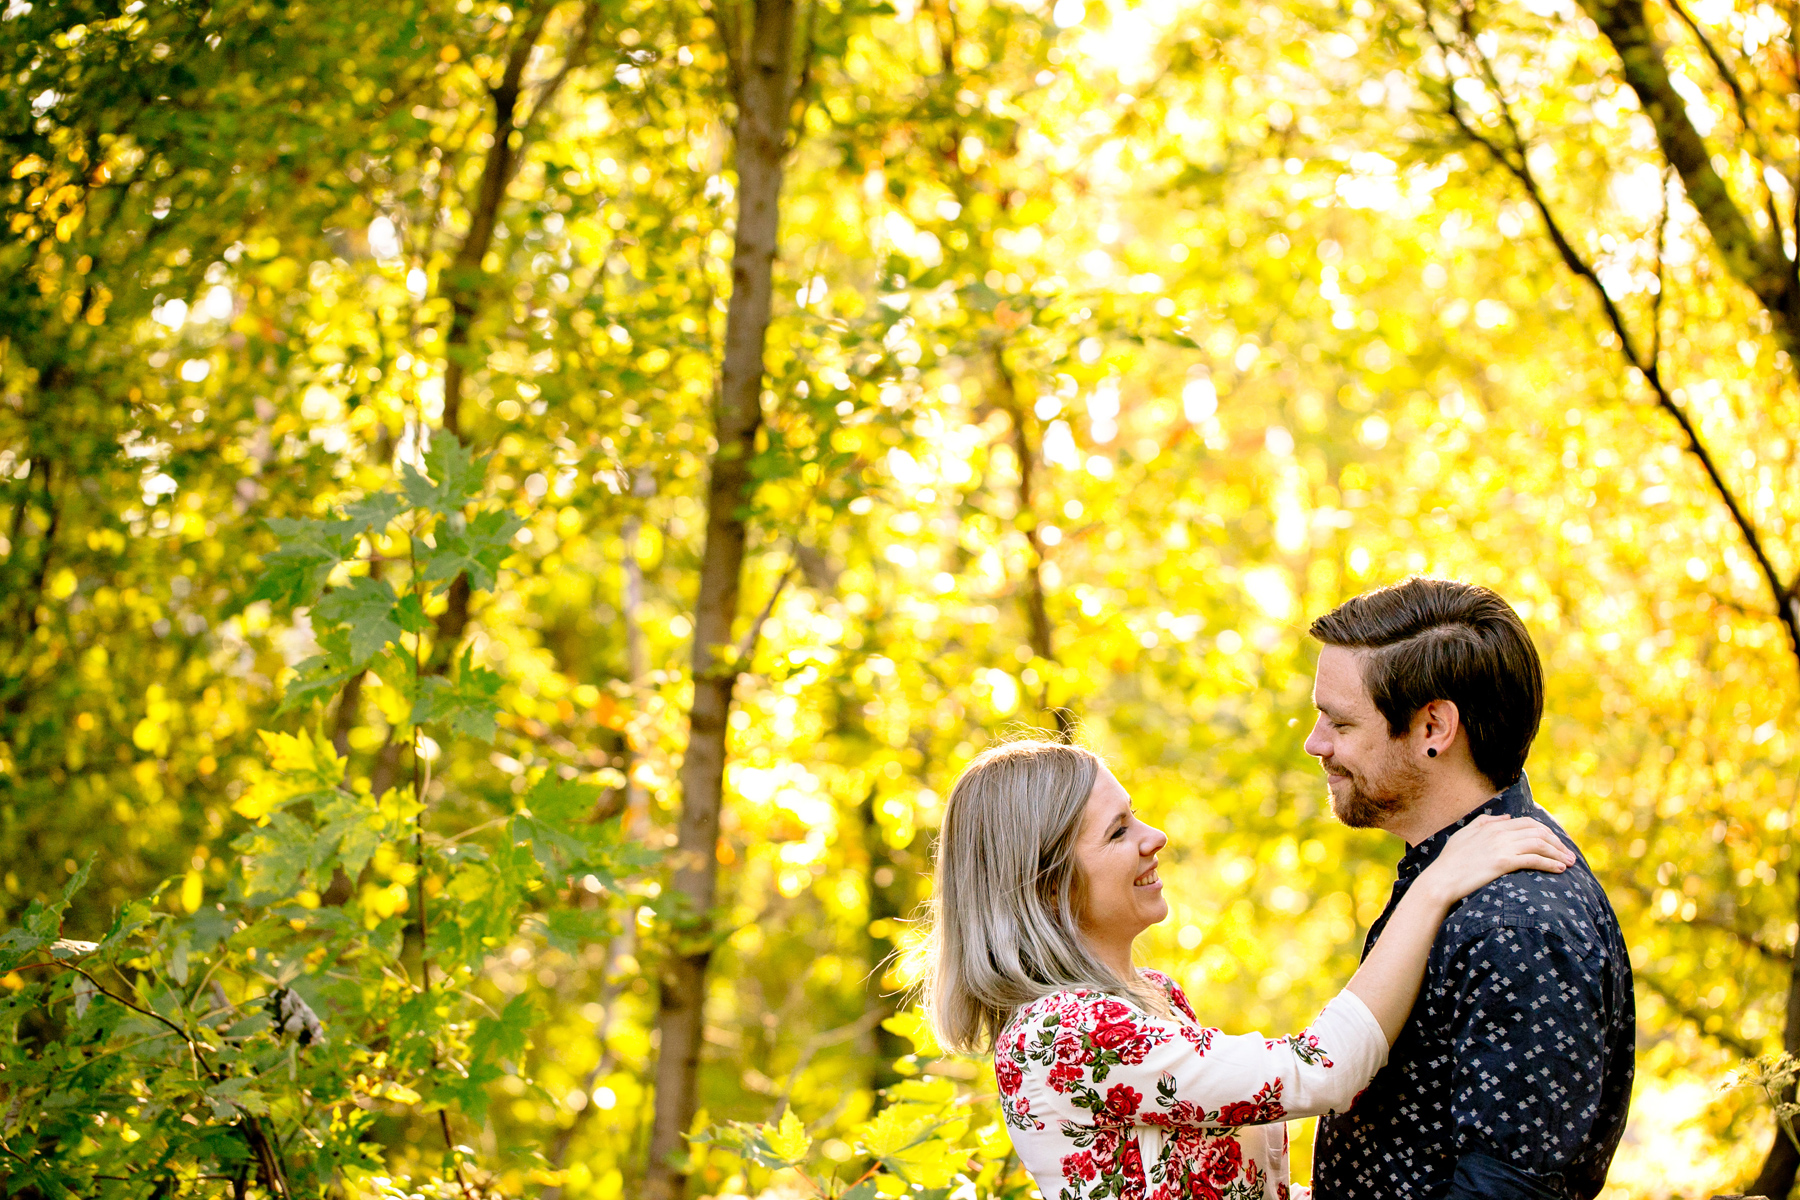 011-awesome-fredericton-engagement-photographer-kandisebrown-kd2016